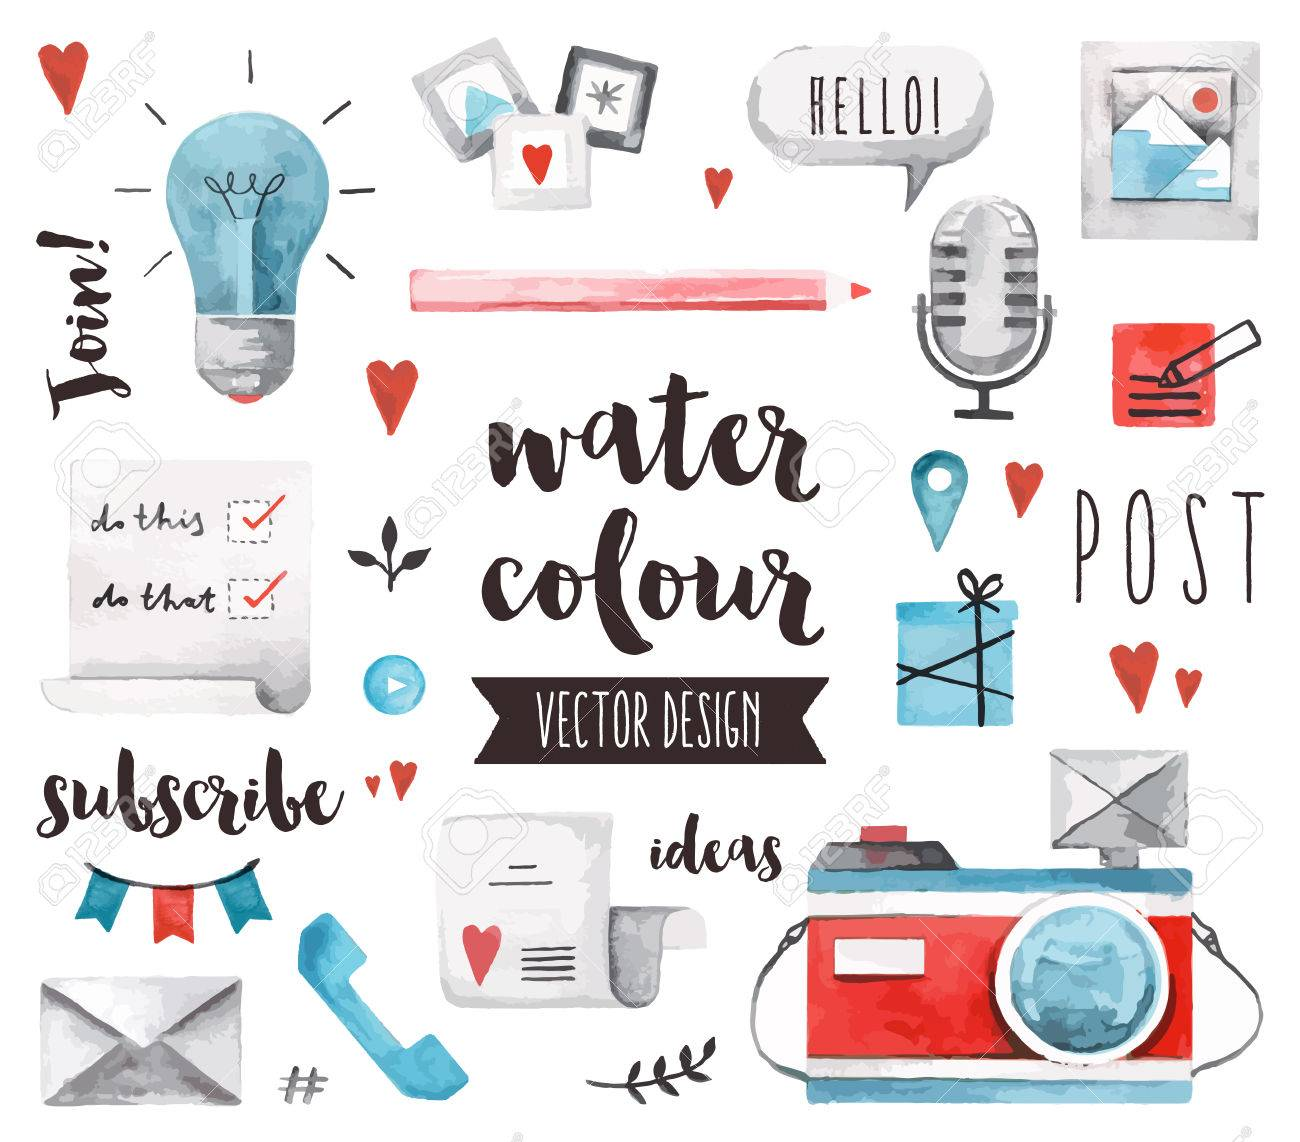 Premium quality watercolor icons set of social media content posting and blogging.realistic decoration with text lettering. Flat lay watercolour objects isolated on white background. Stock Vector - 53856863